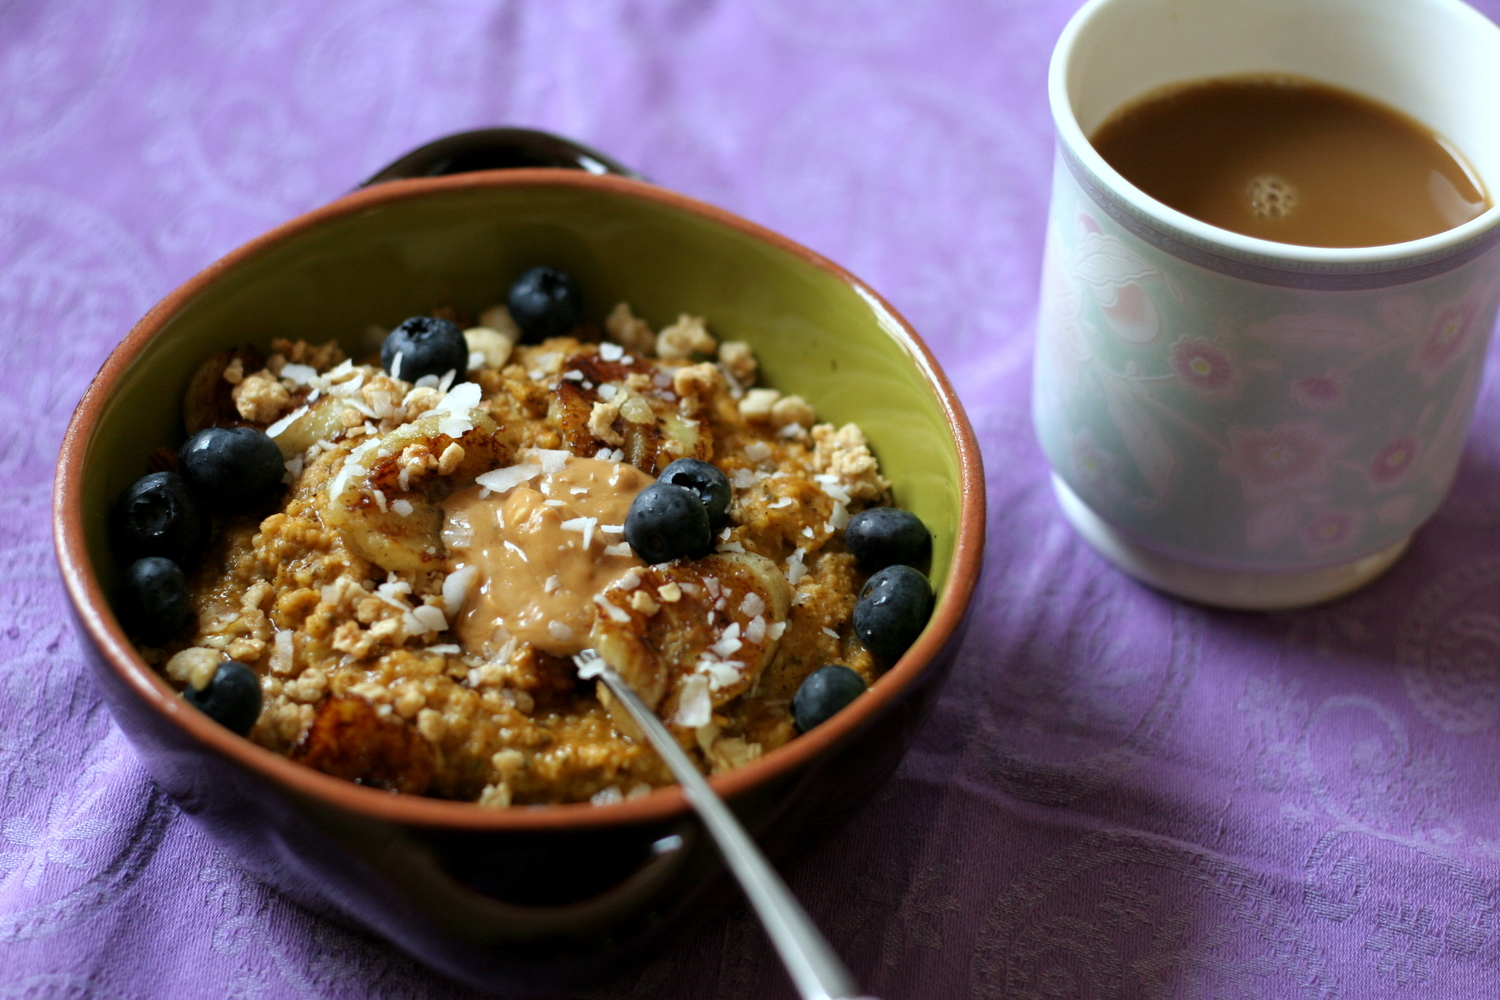 caramelized banana pumpkin oatmeal.jpg